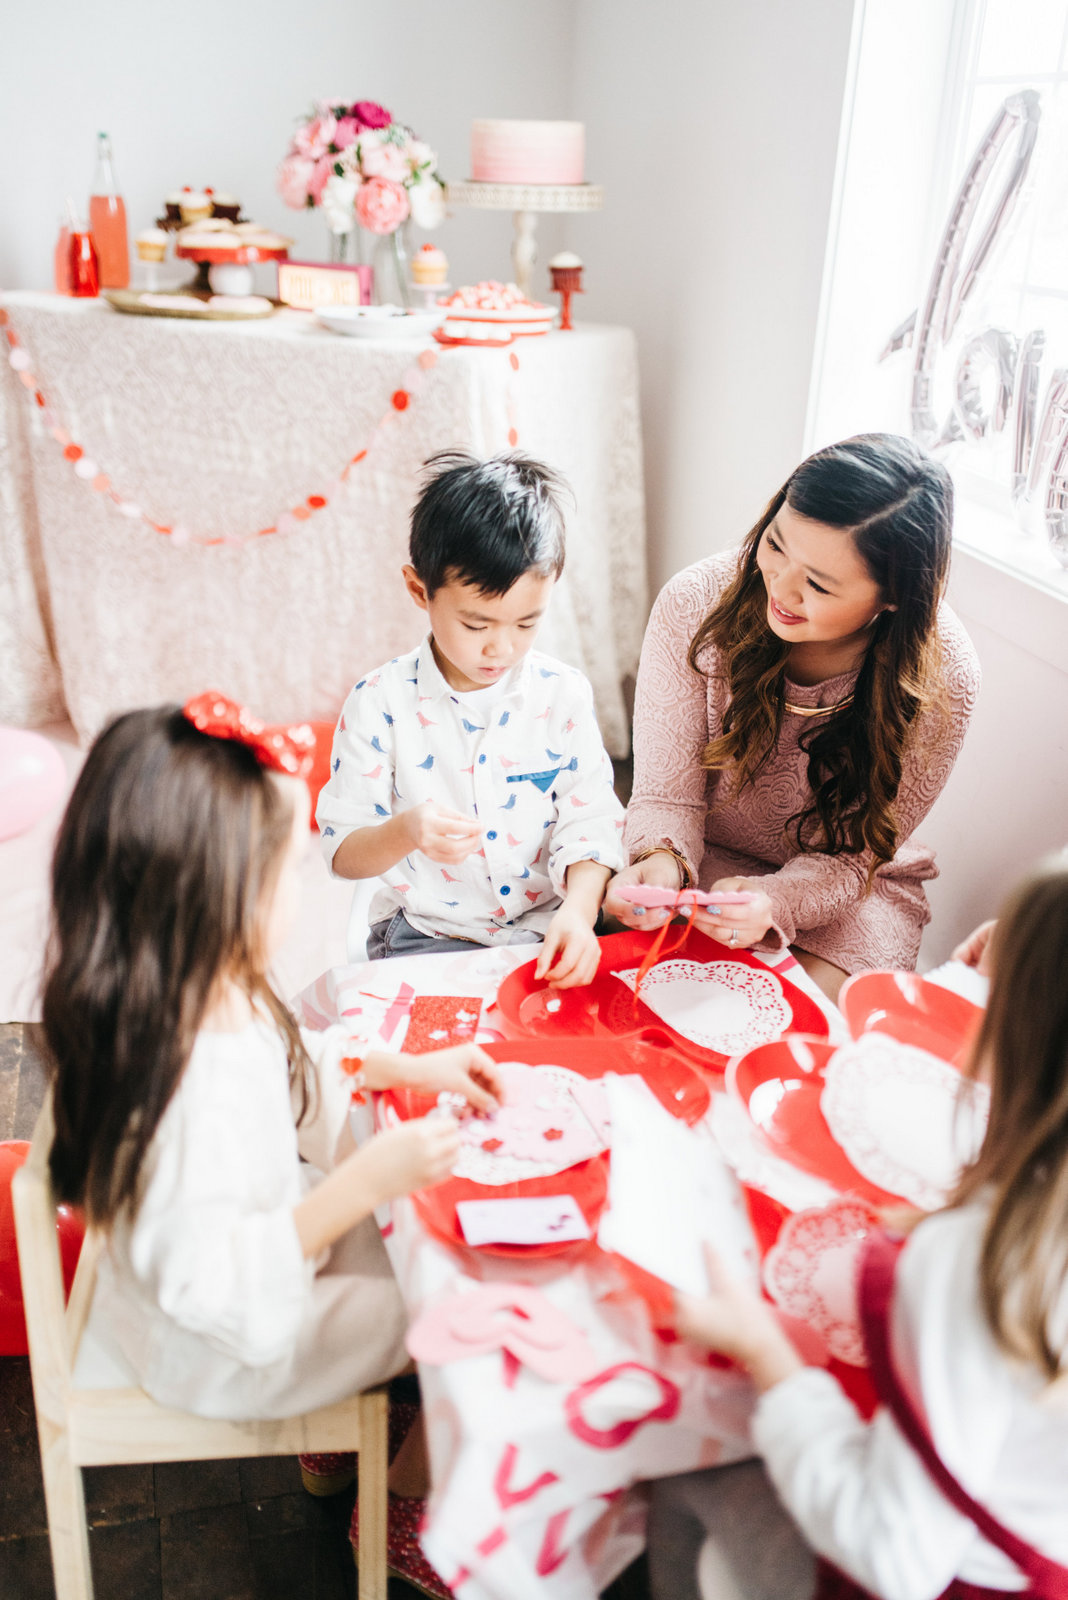 Family Valentine's Day Ideas: Valentines Crafts